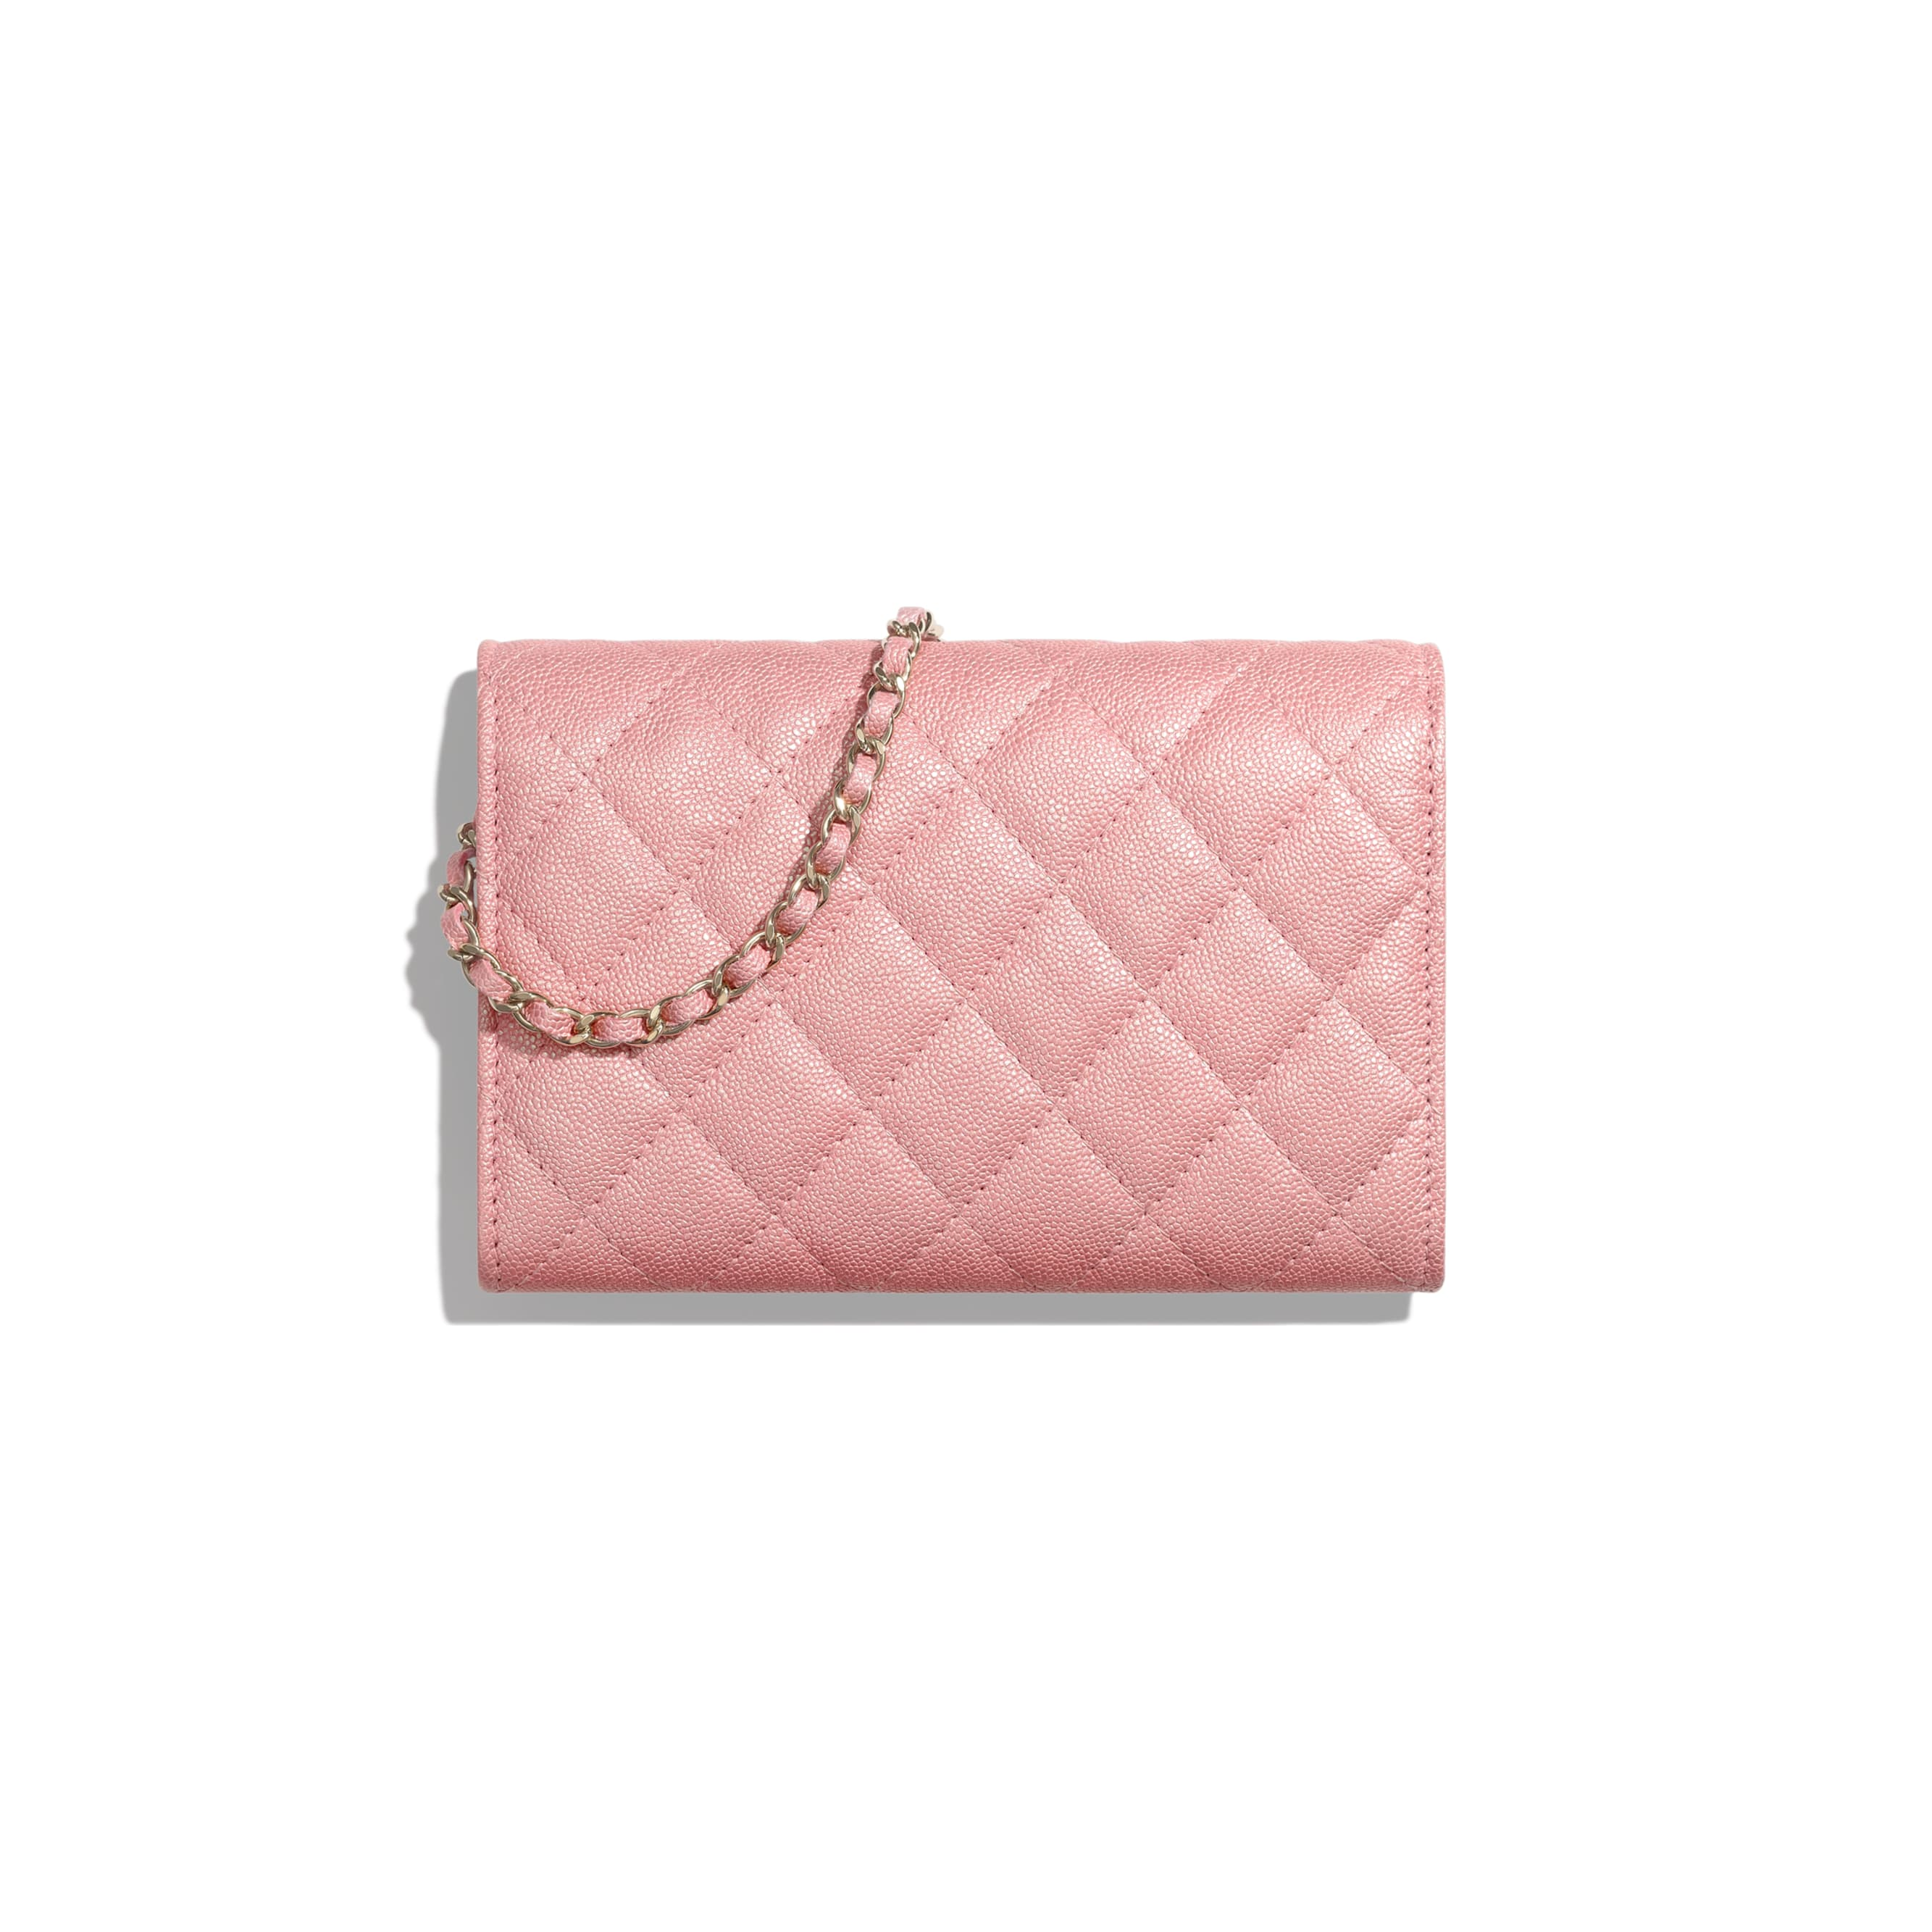 Classic Clutch with Chain - Pink - Iridescent Grained Calfskin & Gold-Tone Metal - Alternative view - see standard sized version